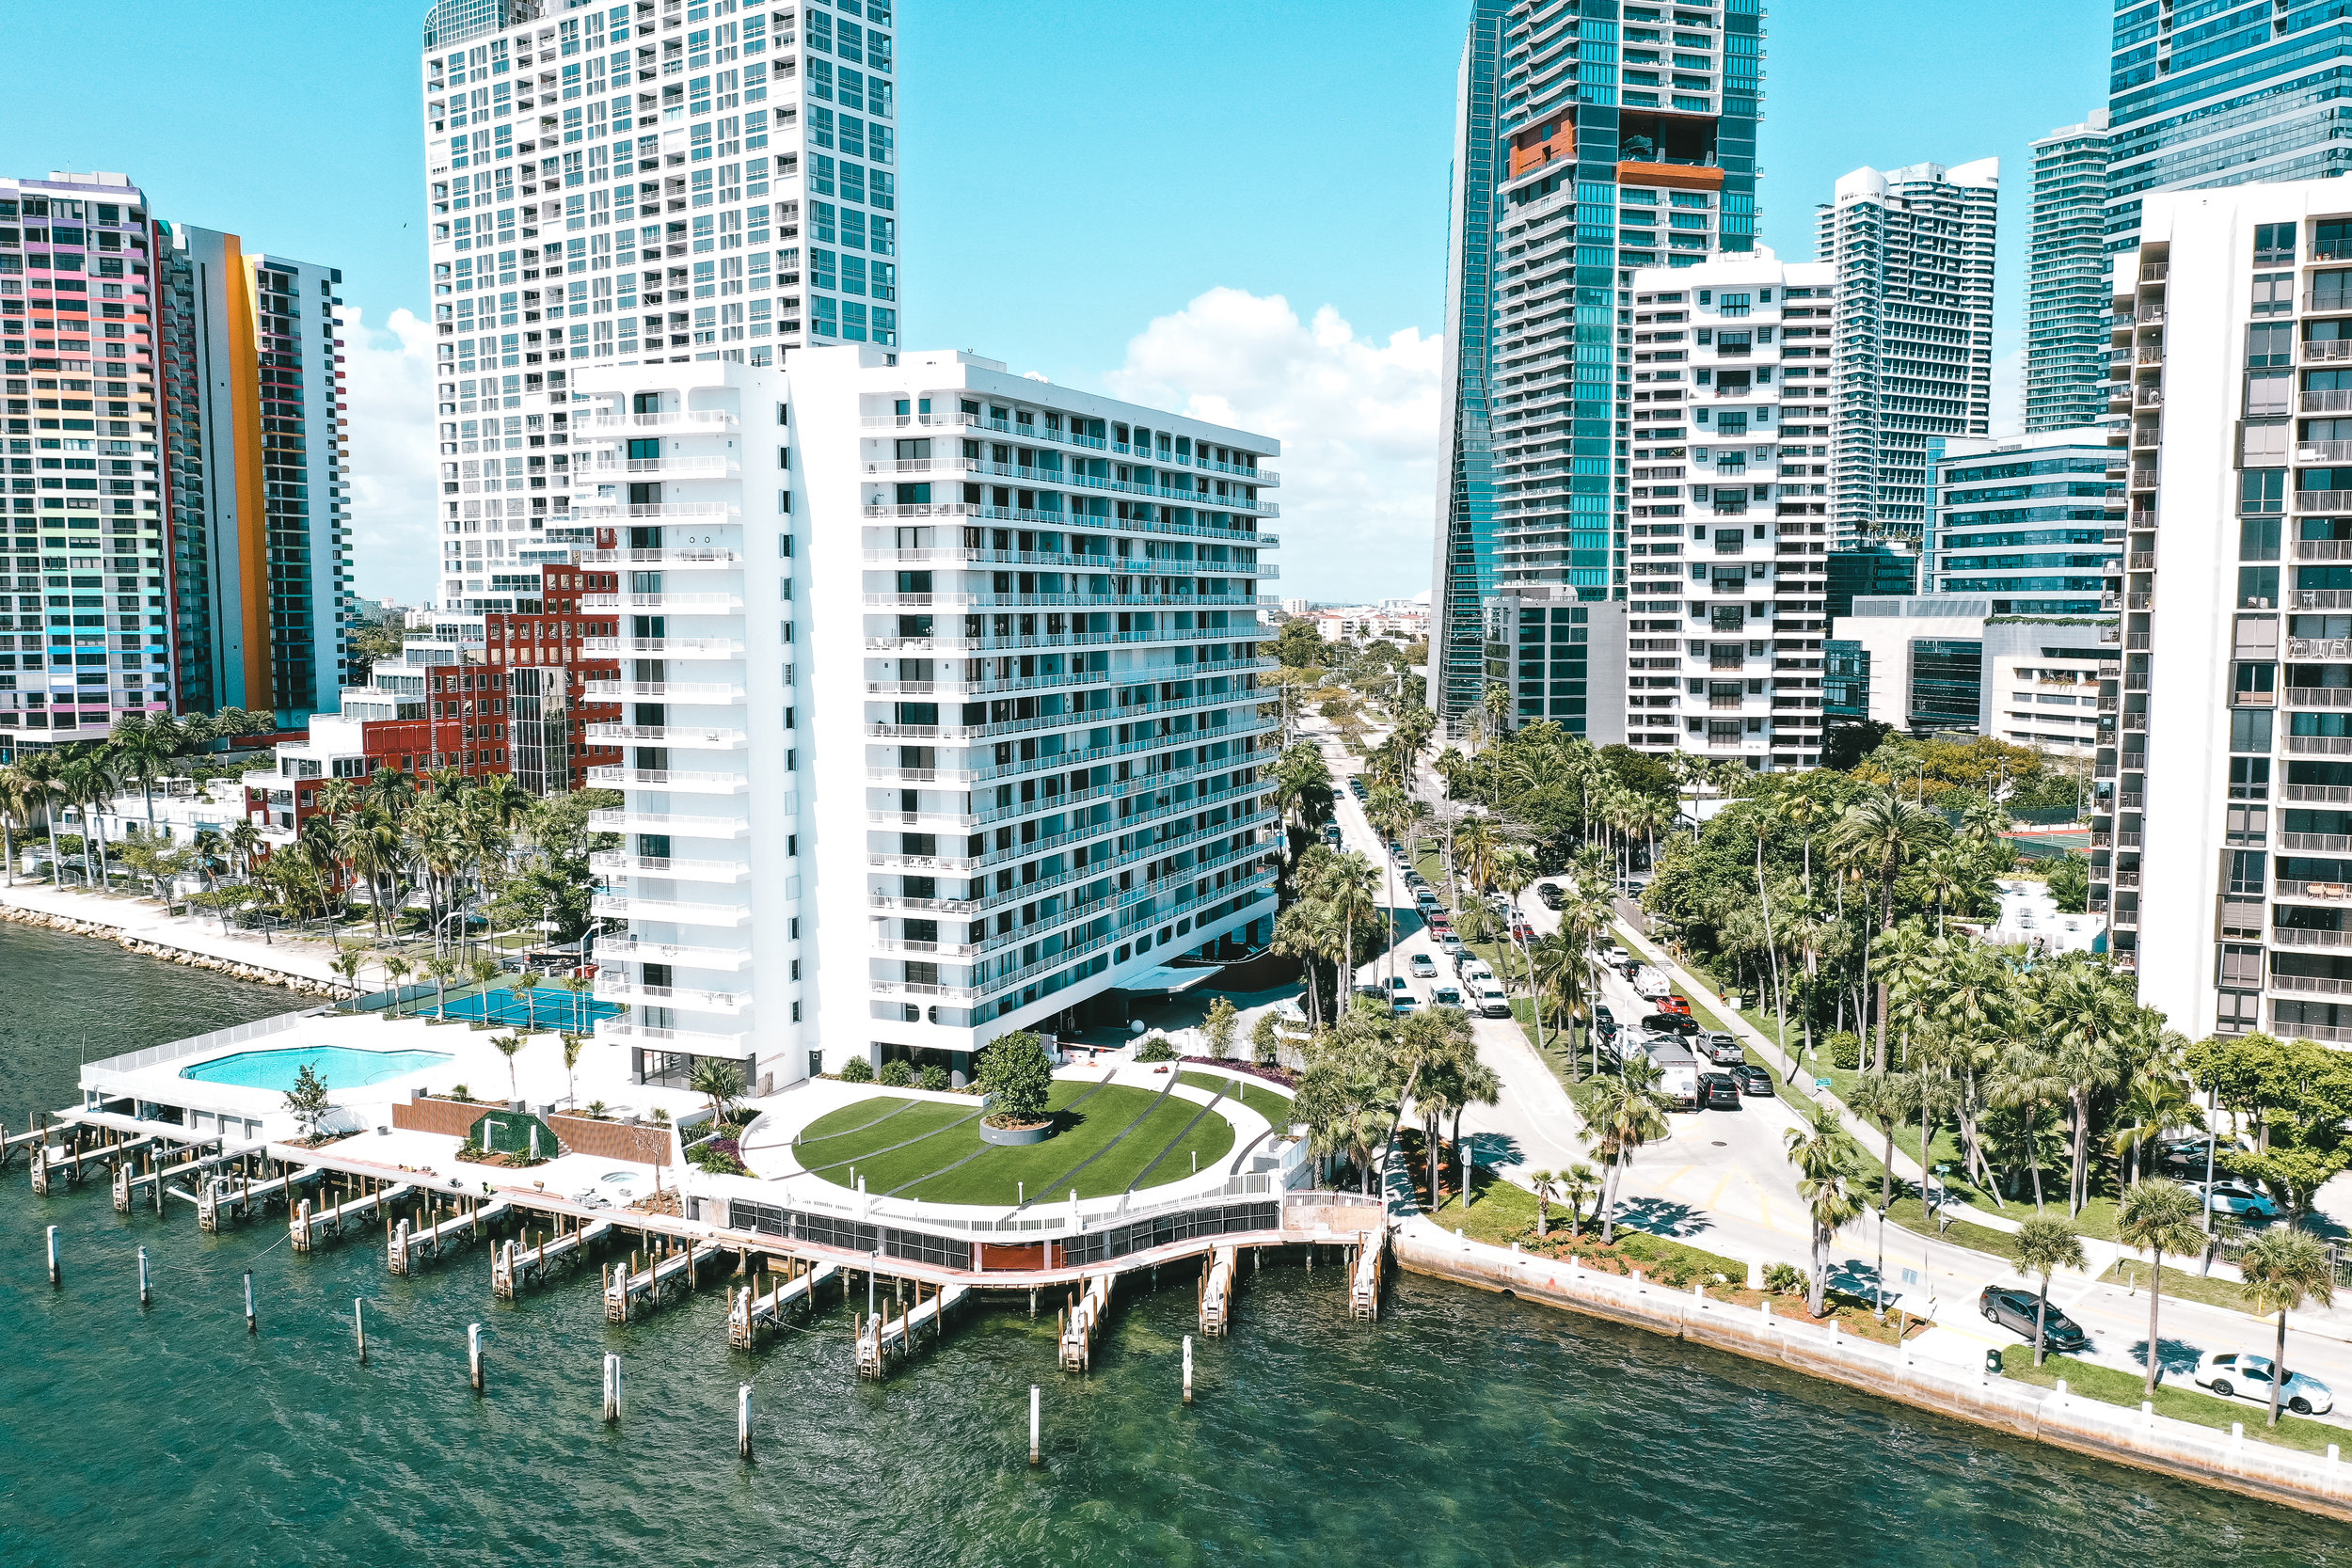 Brickell Harbour - Address: 200 SE 15th Road, Miami, FL 33129Number of Units: 161Info: Elizabeth Smith